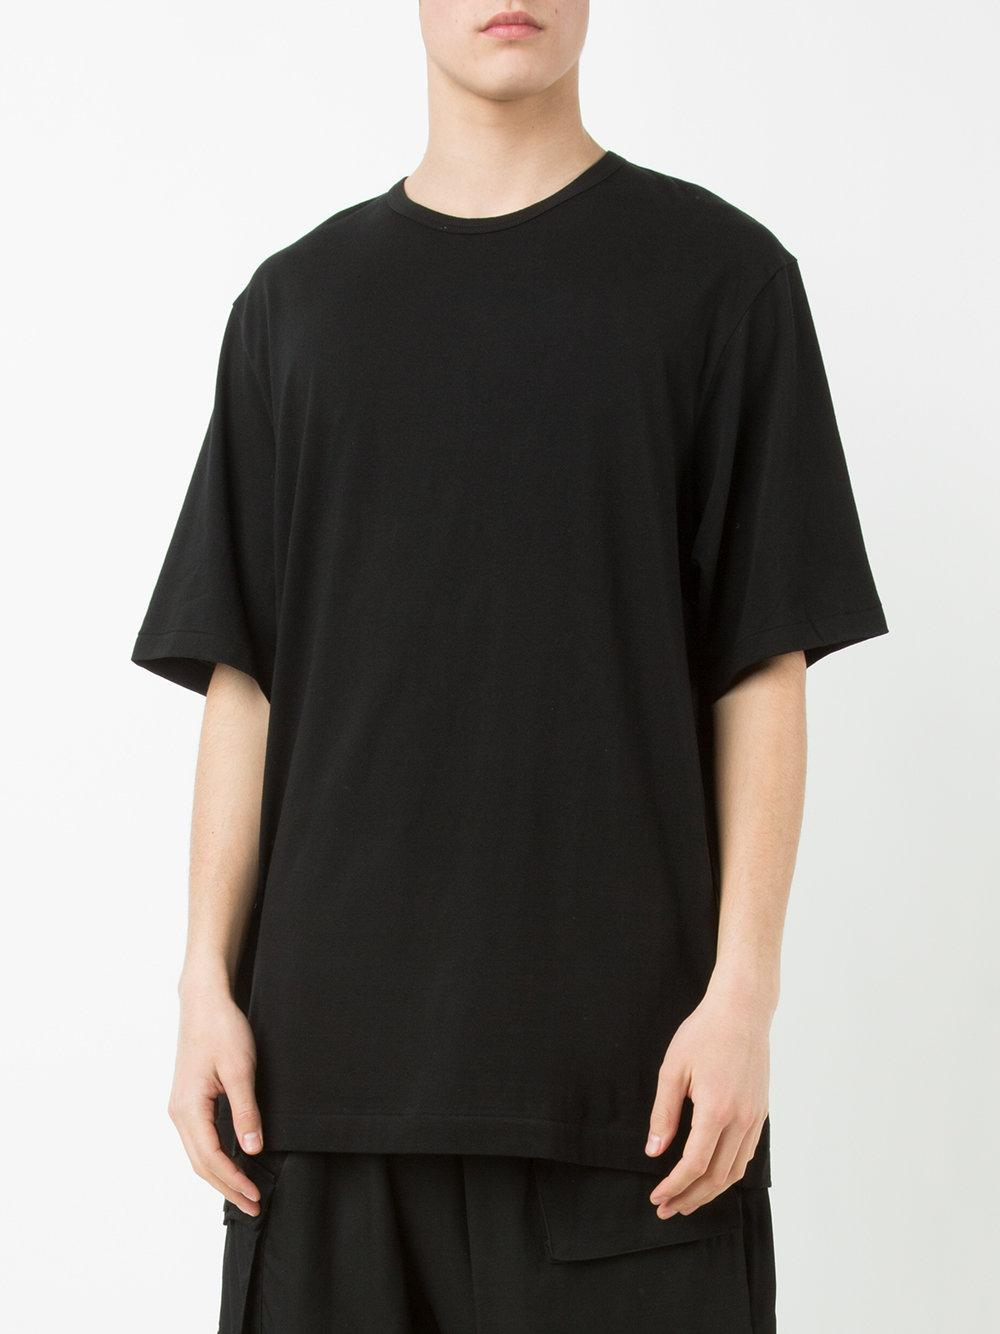 yohji yamamoto long sleeve staff t shirt black in black